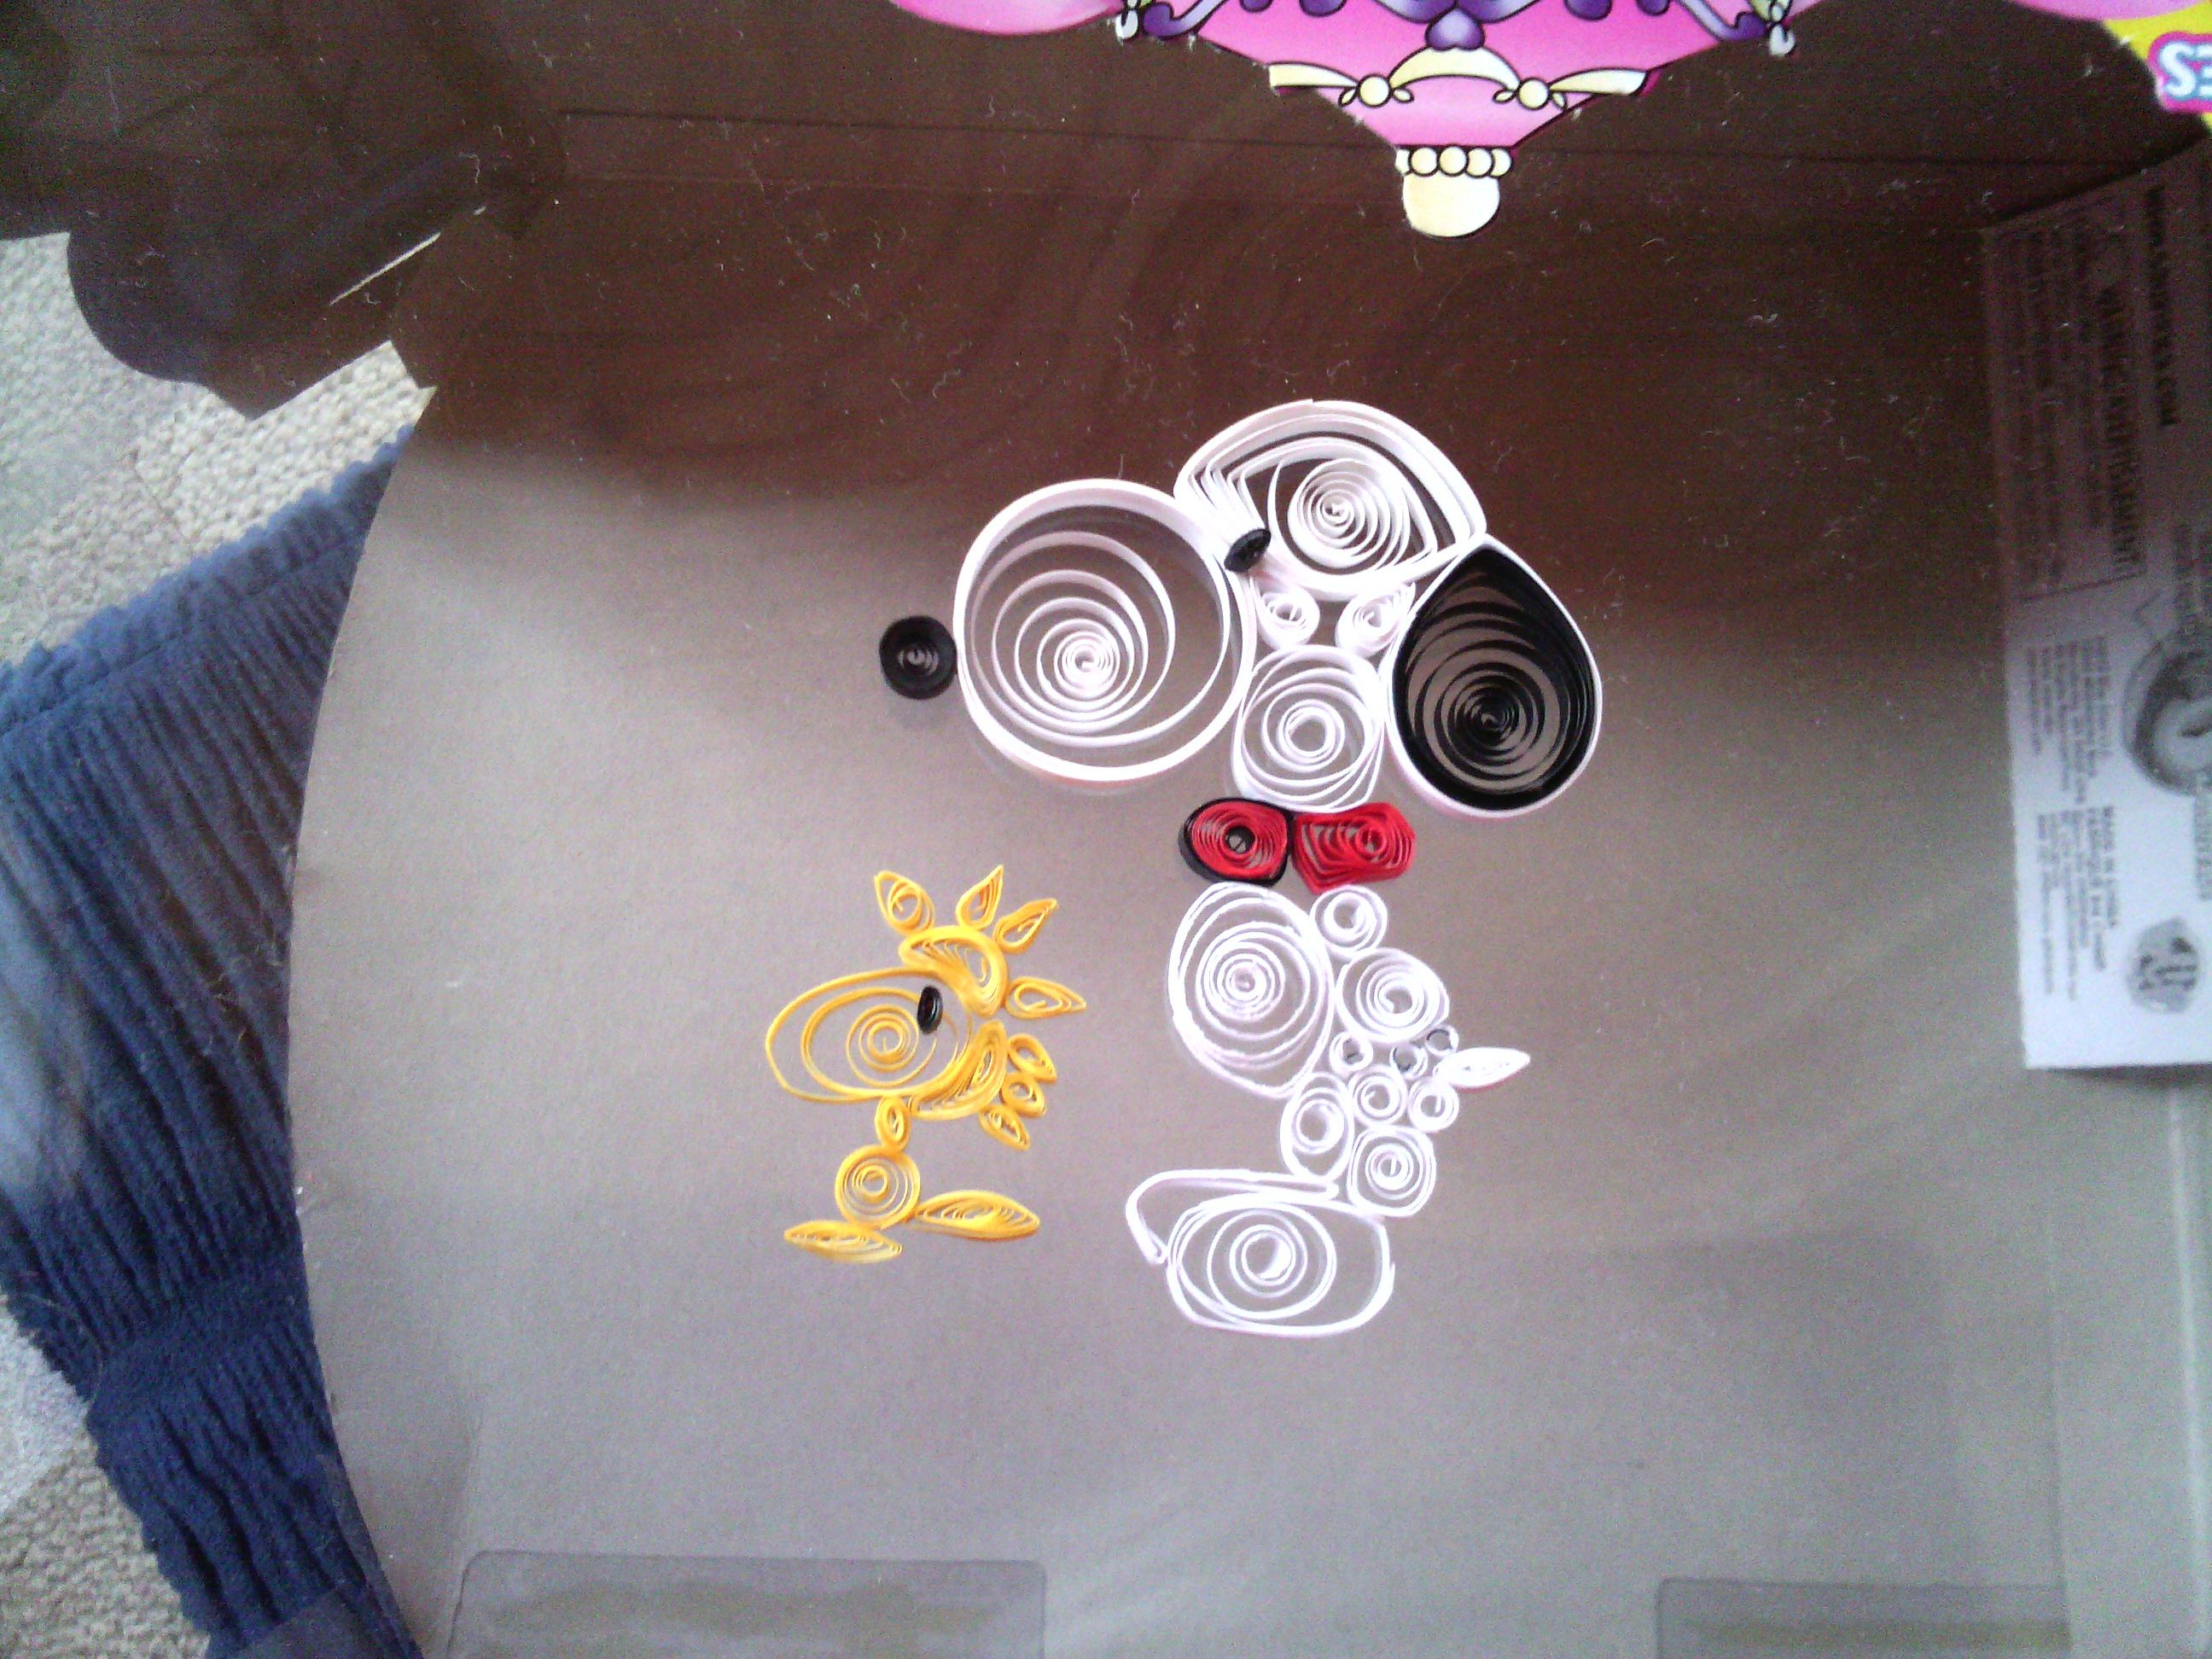 Cute snoopy and Woodstock quilling pattern I made it up with my sister so you can't find it anywhere else.